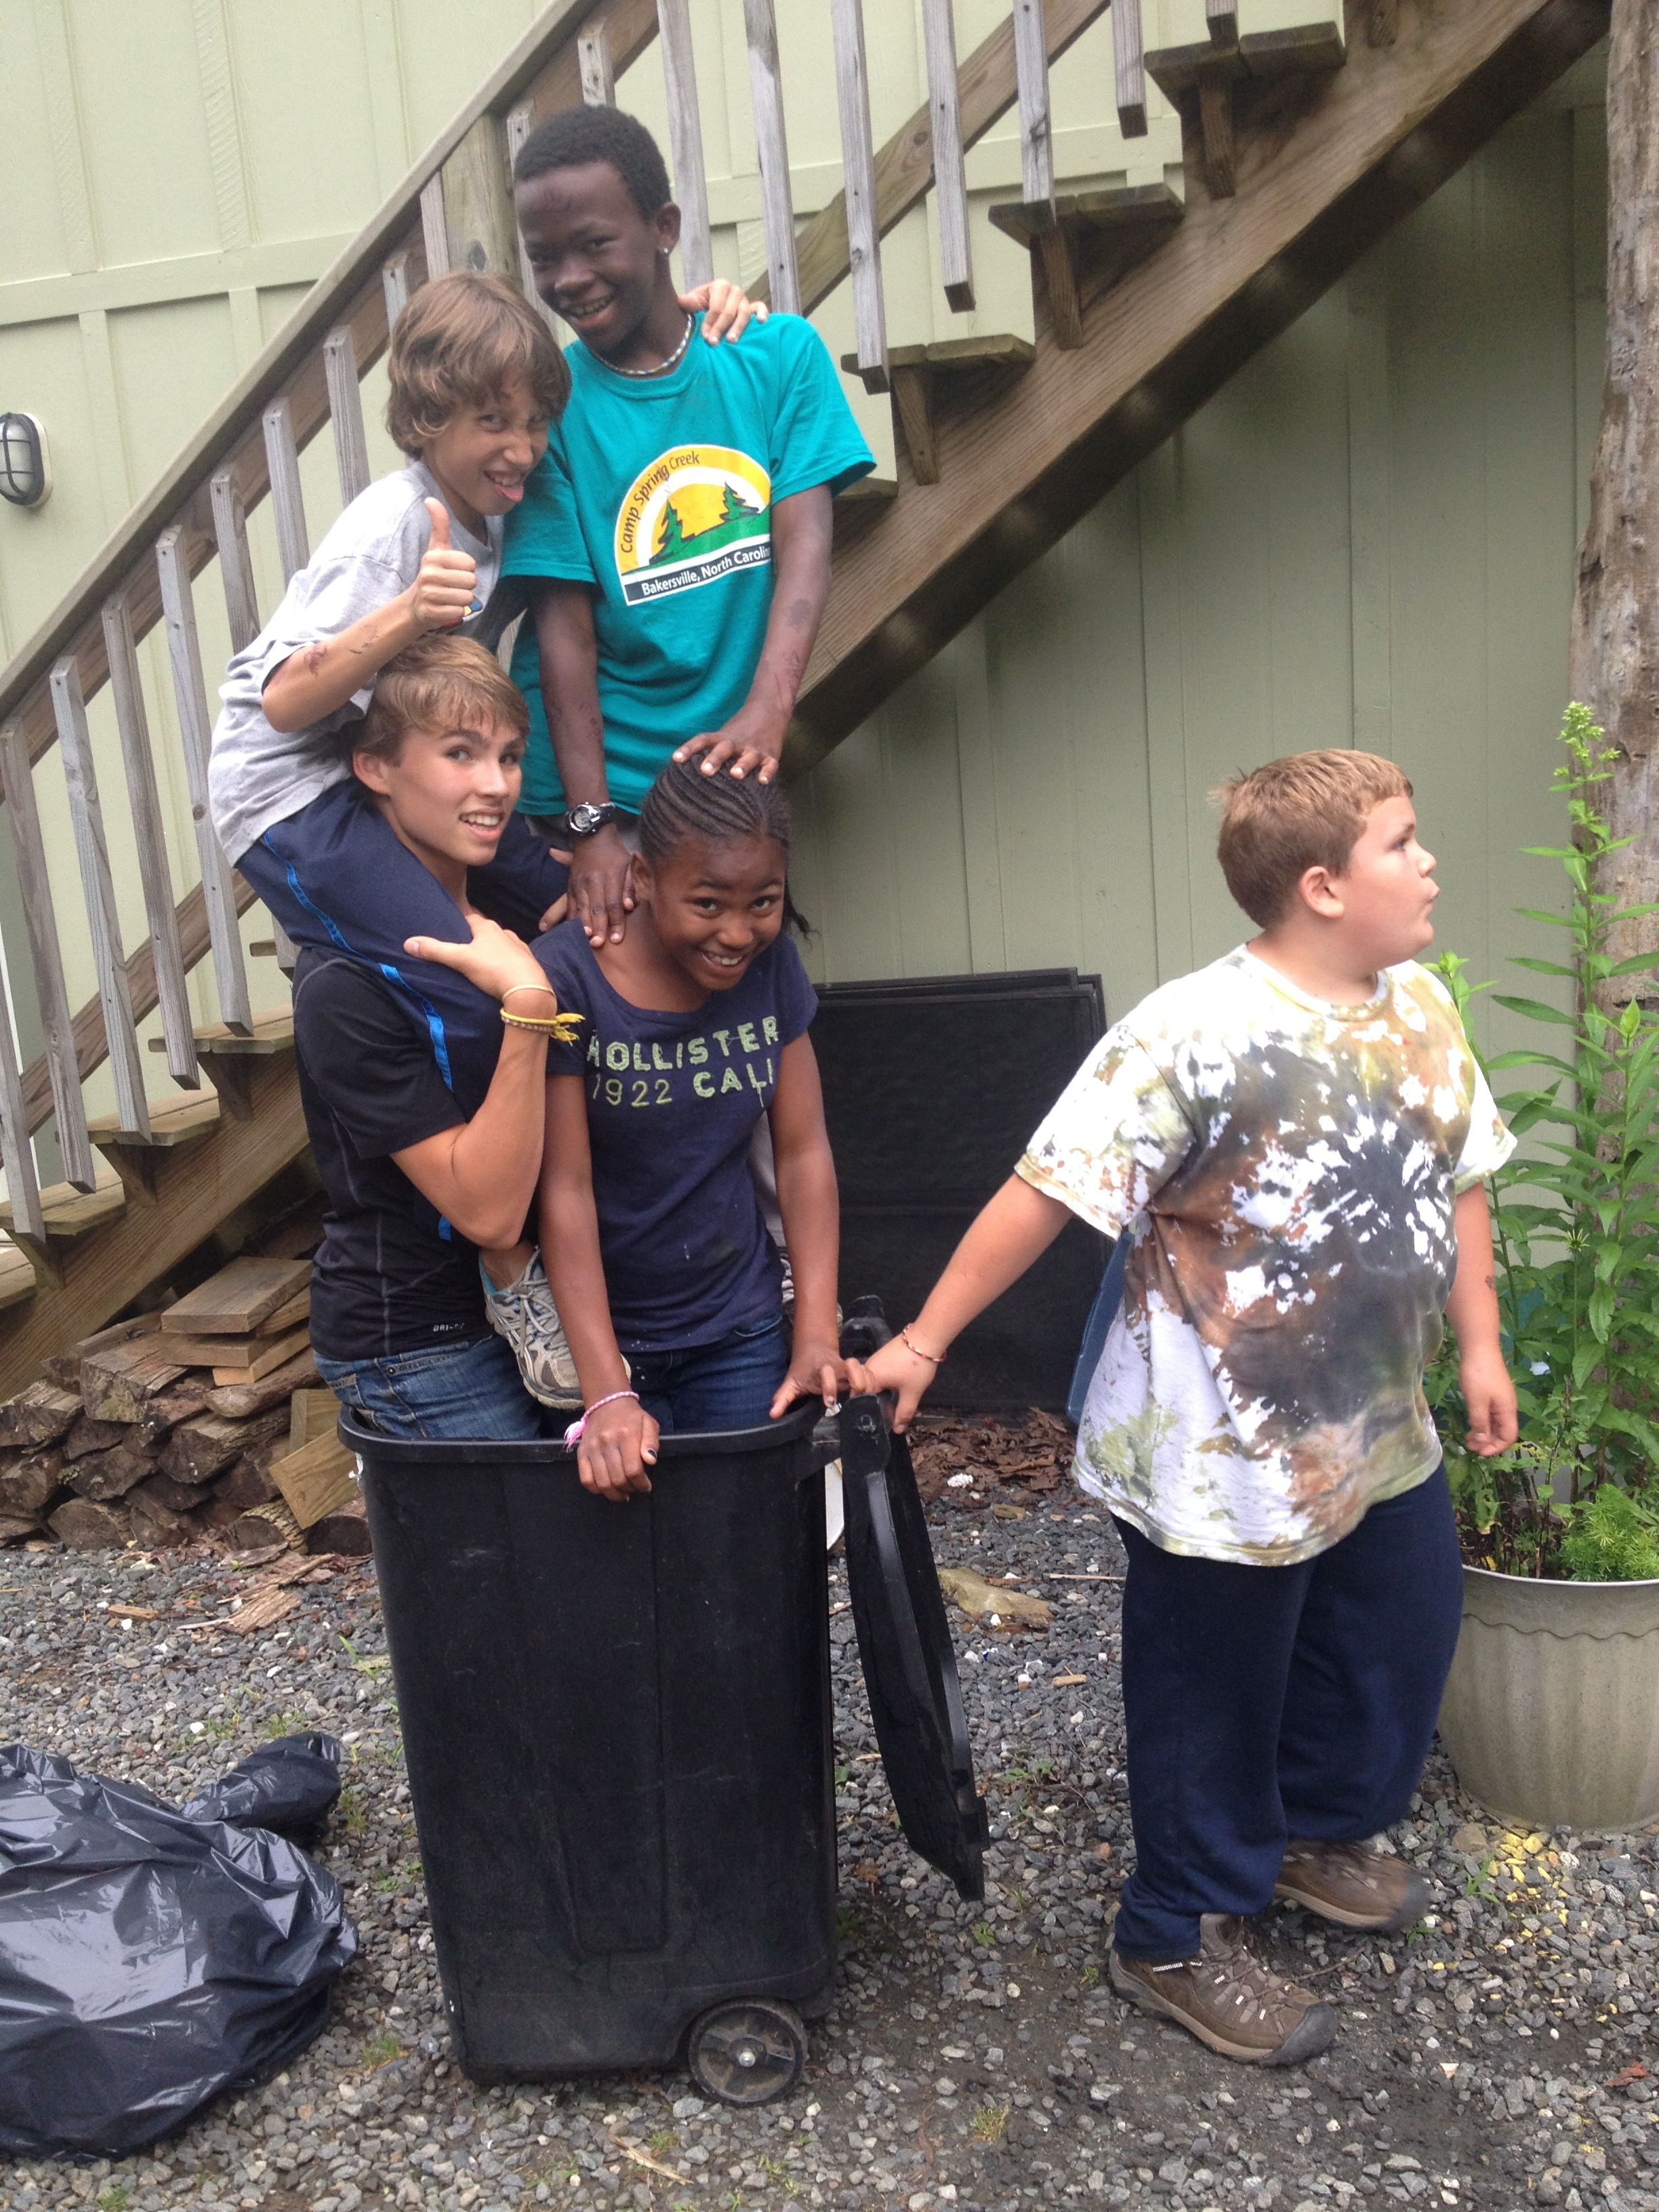 how-many-campers-can-we-fit-in-a-trash-can-bruce-janusz-cynia-and-jazel-prove-we-can-fit-four-now-matthew-will-take-them-to-the-dump.jpg